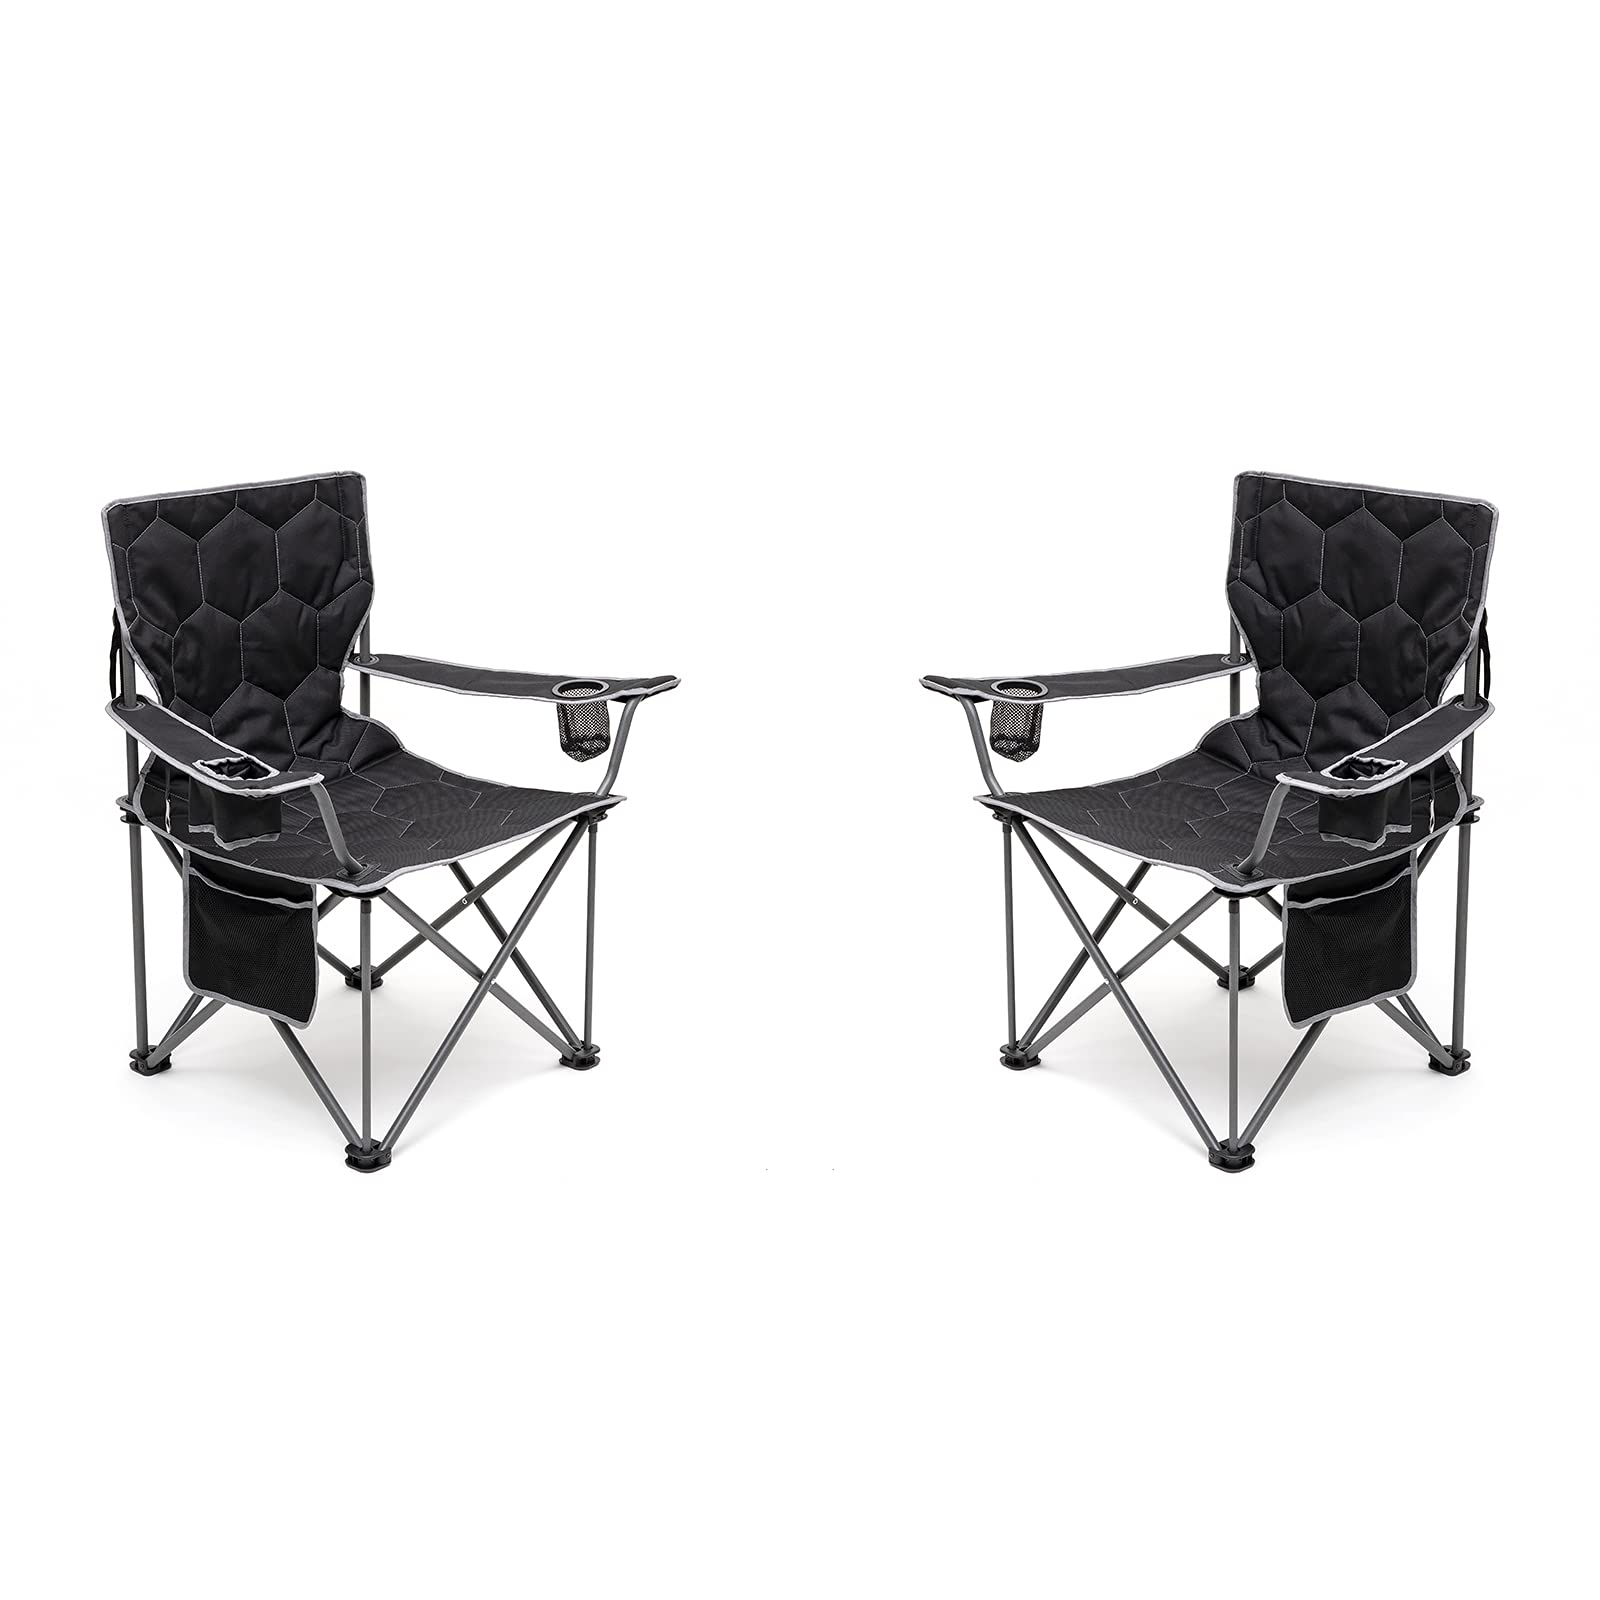 SUNNYFEEL Oversized Camping Chair, Heavy Duty, Supports 500 LBS, Padded Portable Folding Chair with Armrest Cup Holder & Side Pocket for Beach/Lawn/Outdoor/Travel/Picnic, Storage Camp Chairs